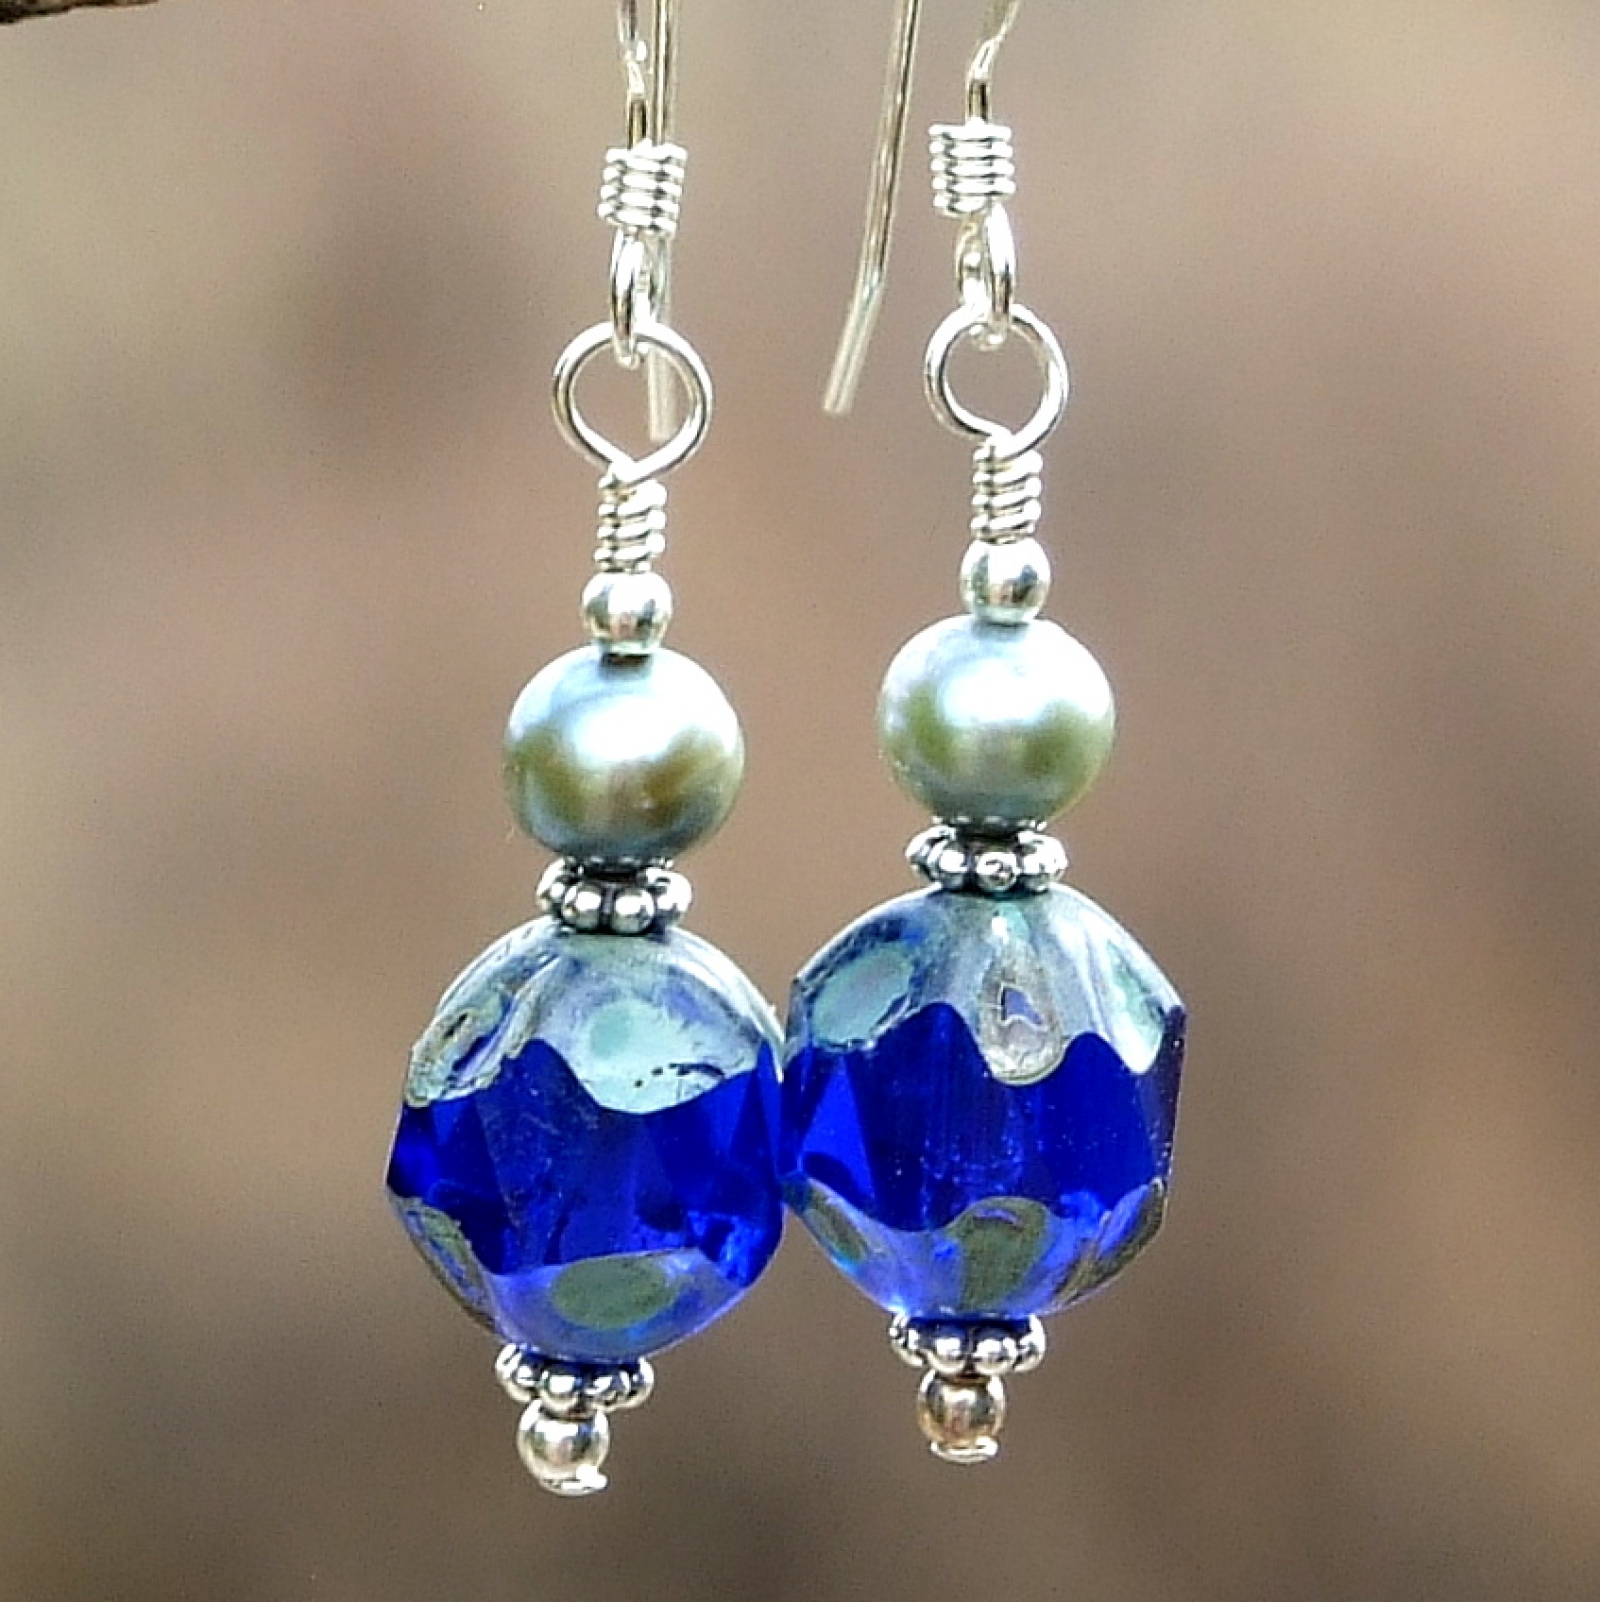 fire totally earrings glass new cool crafty light mary double blue